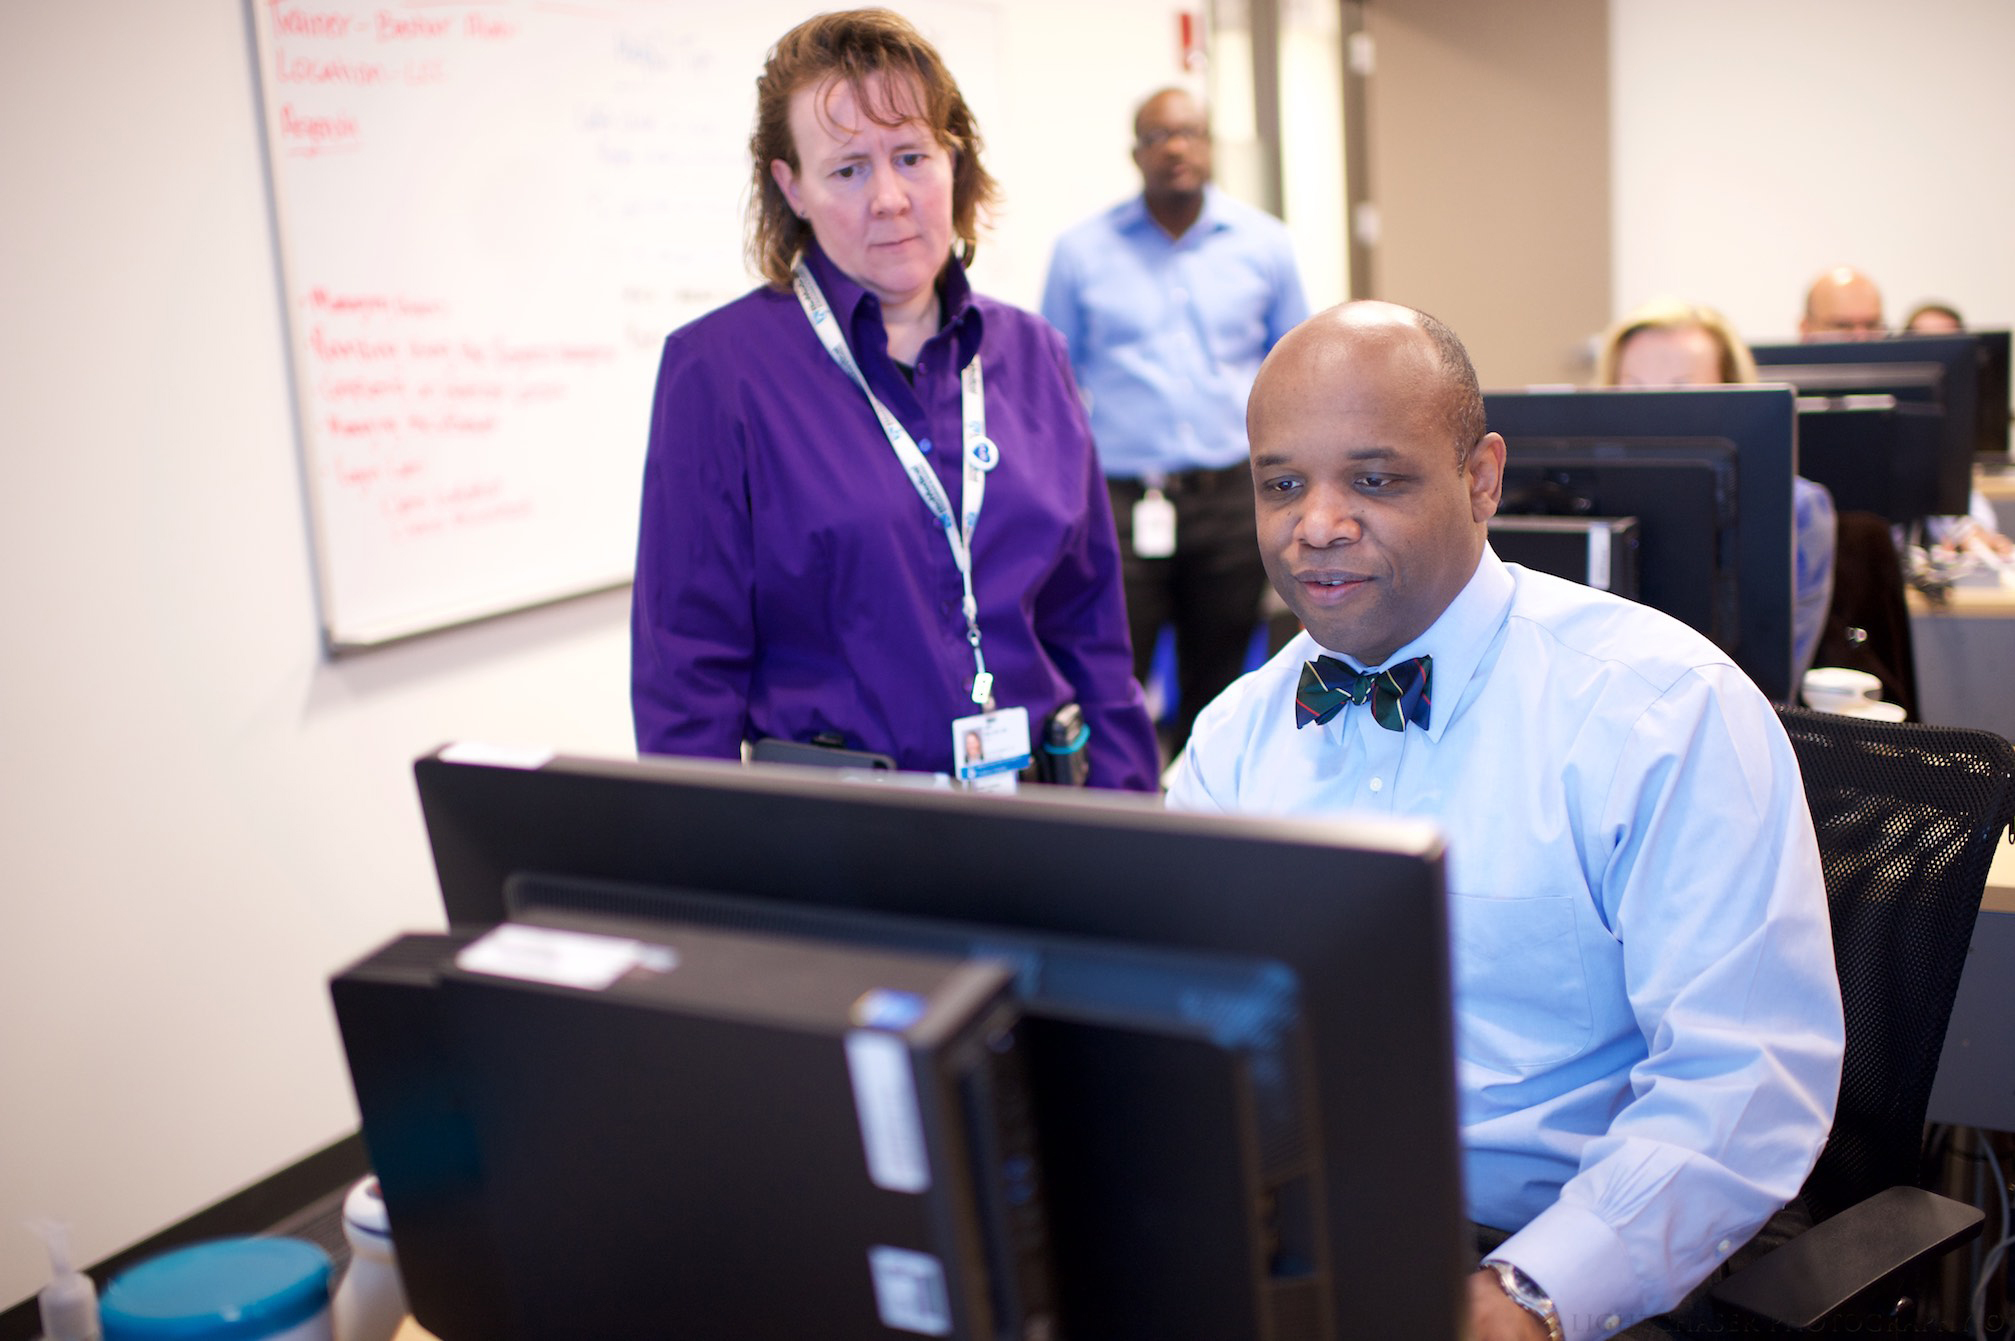 Amy Miller, chief medical information officer for Inpatient Clinical Services, and O'Neil Britton, Partners eCare chief health information officer